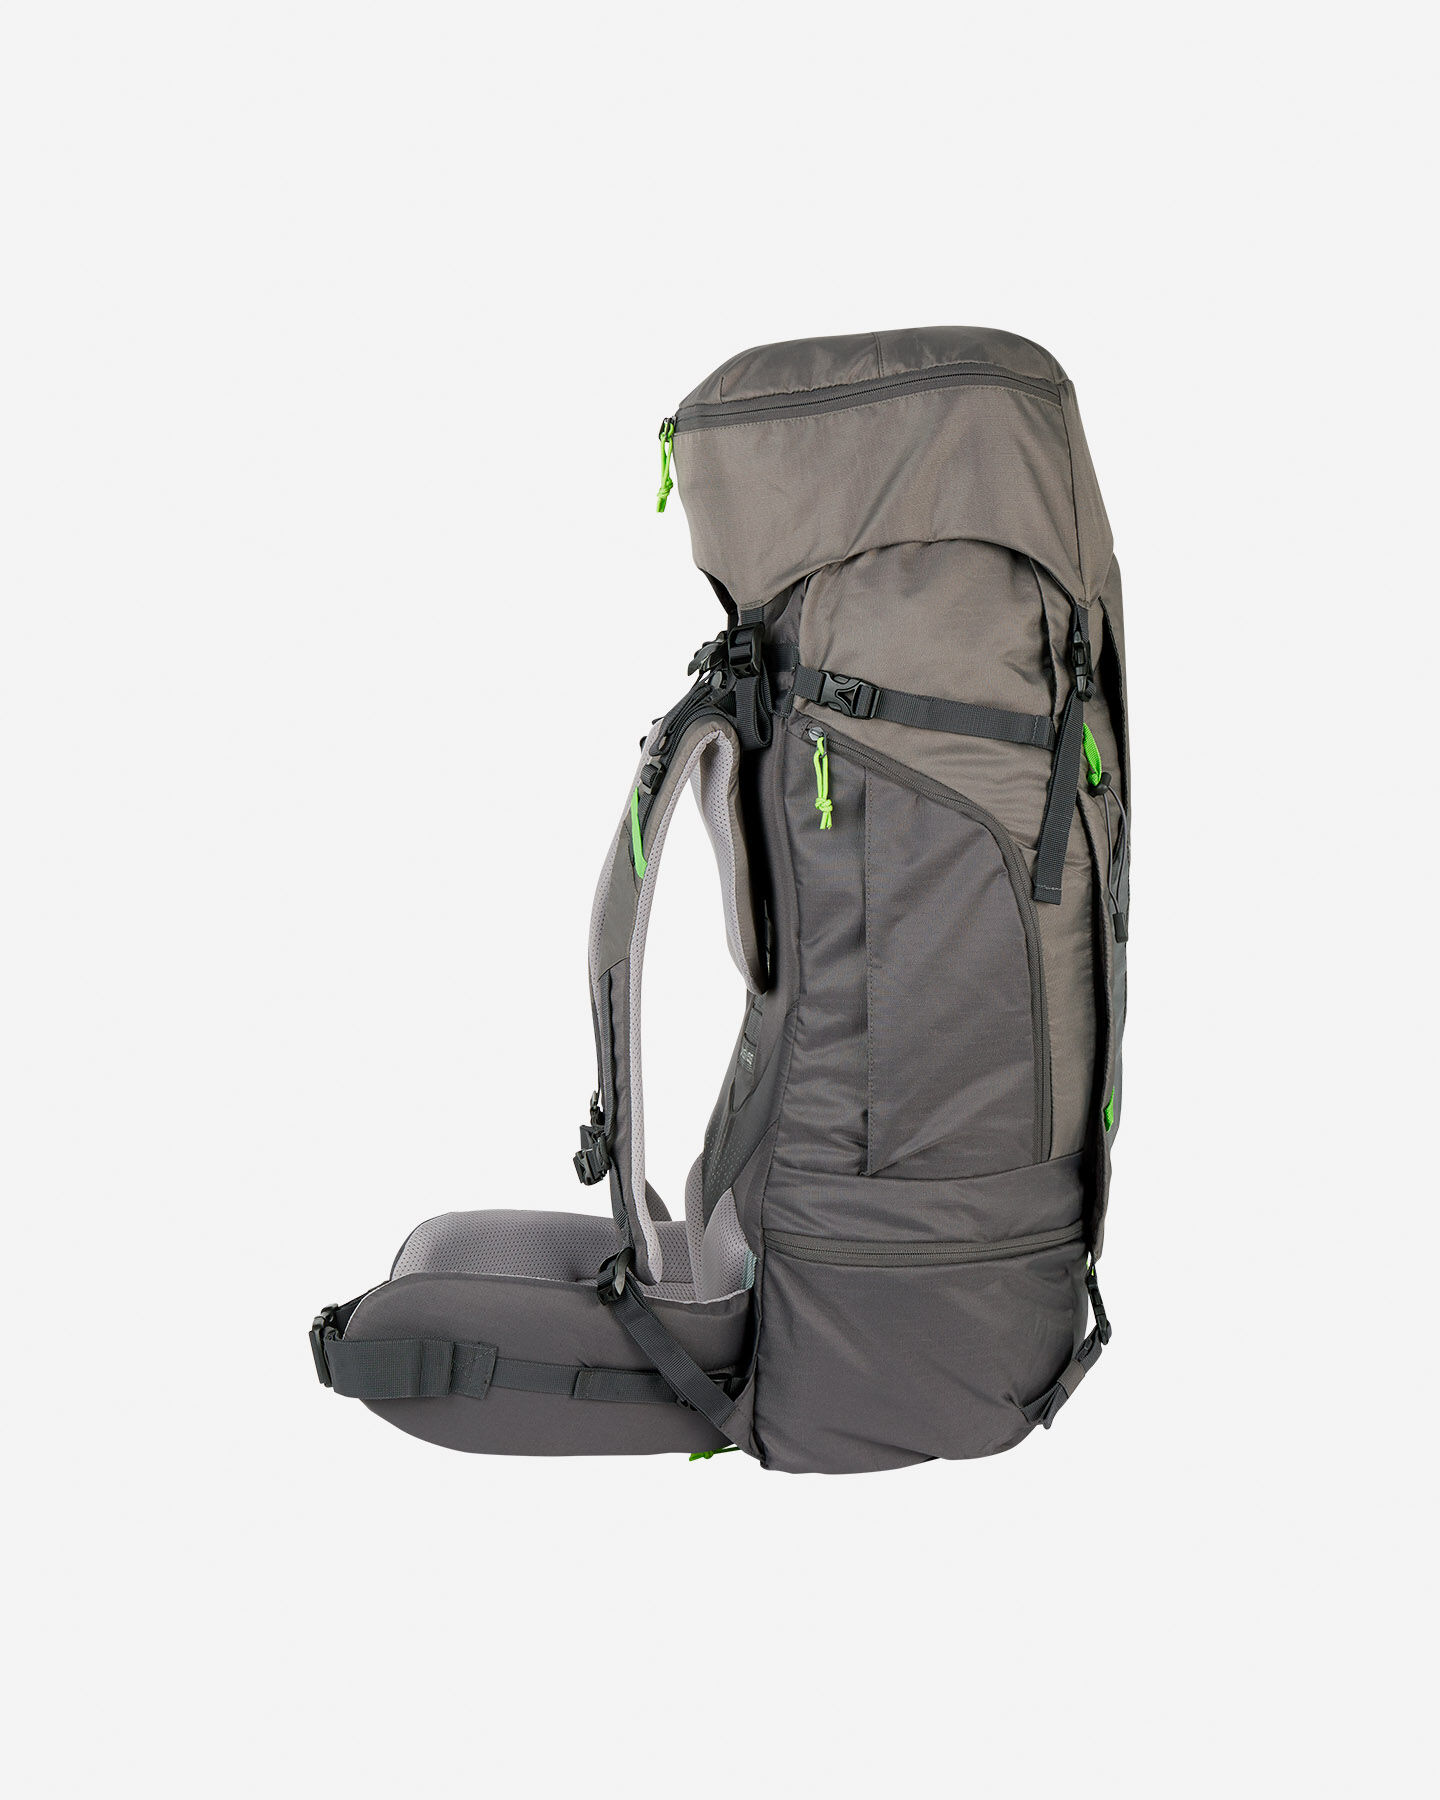 Zaino trekking MCKINLEY MAKE CT 75+10 S5159049|900|75 scatto 1